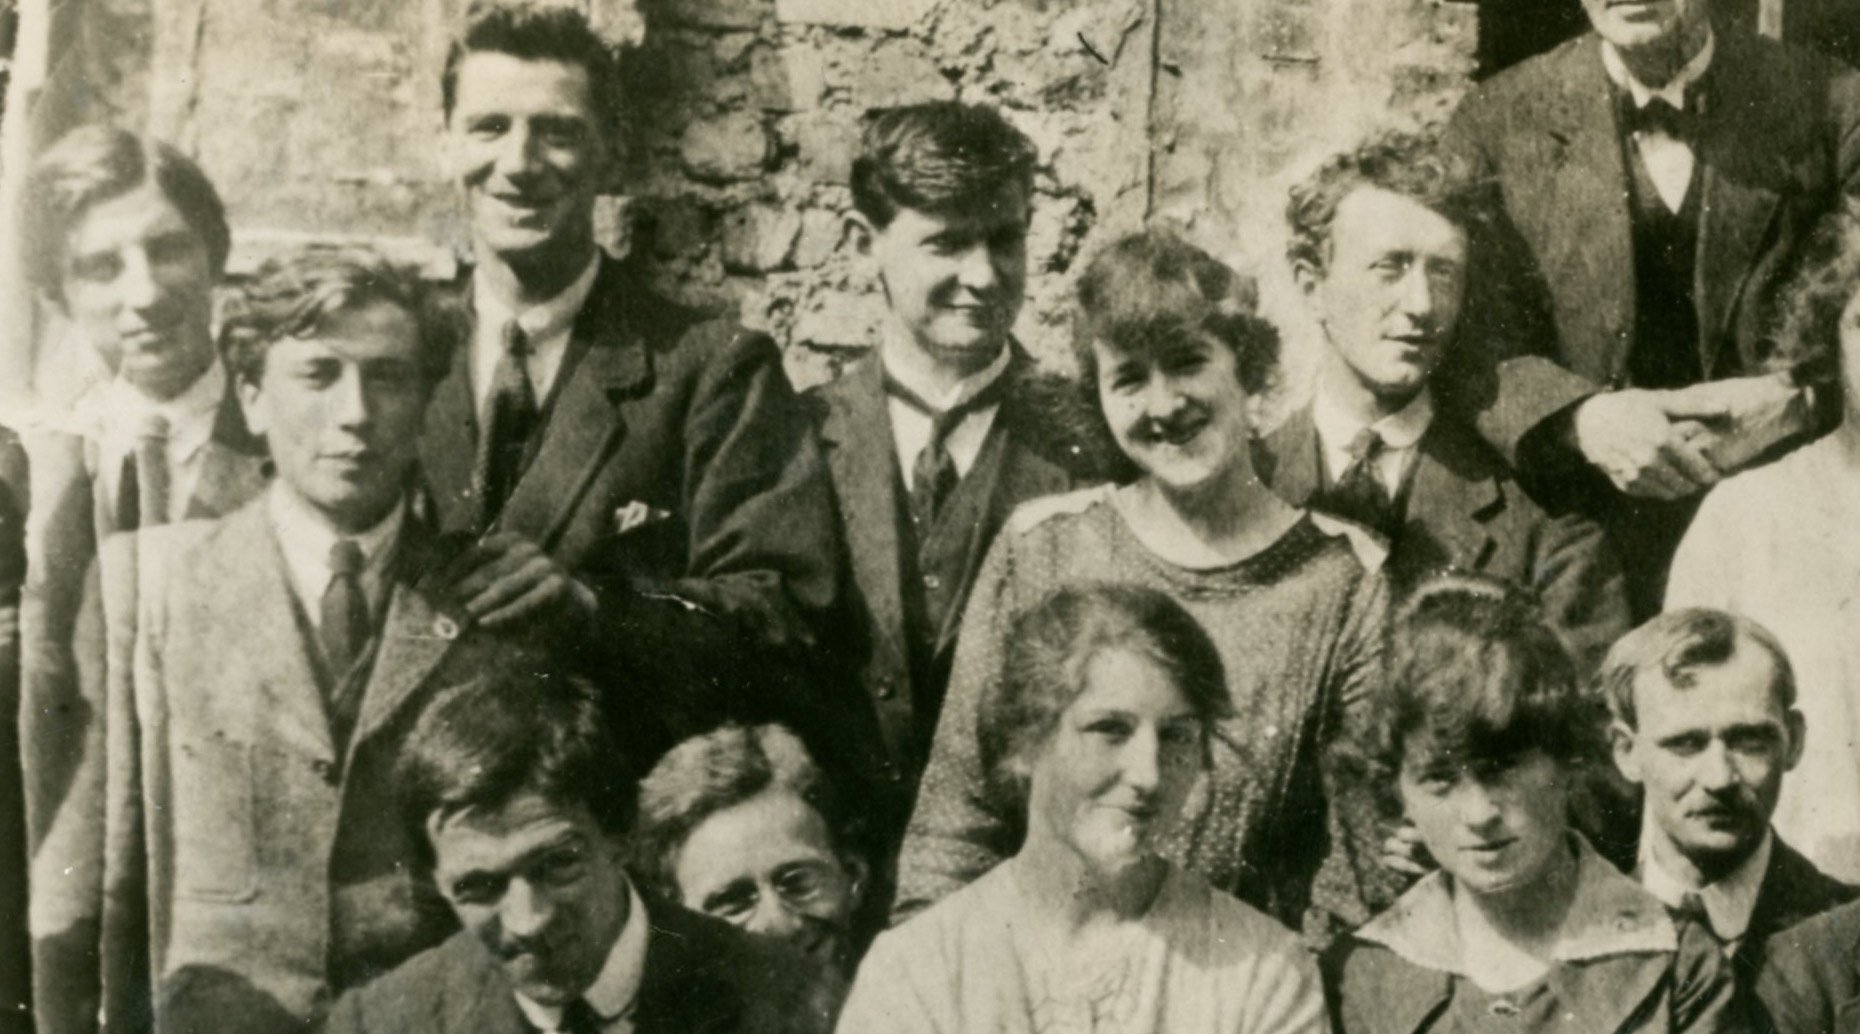 Michael Collins (centre) pictured with other members of the Sinn Féin staff in 1918